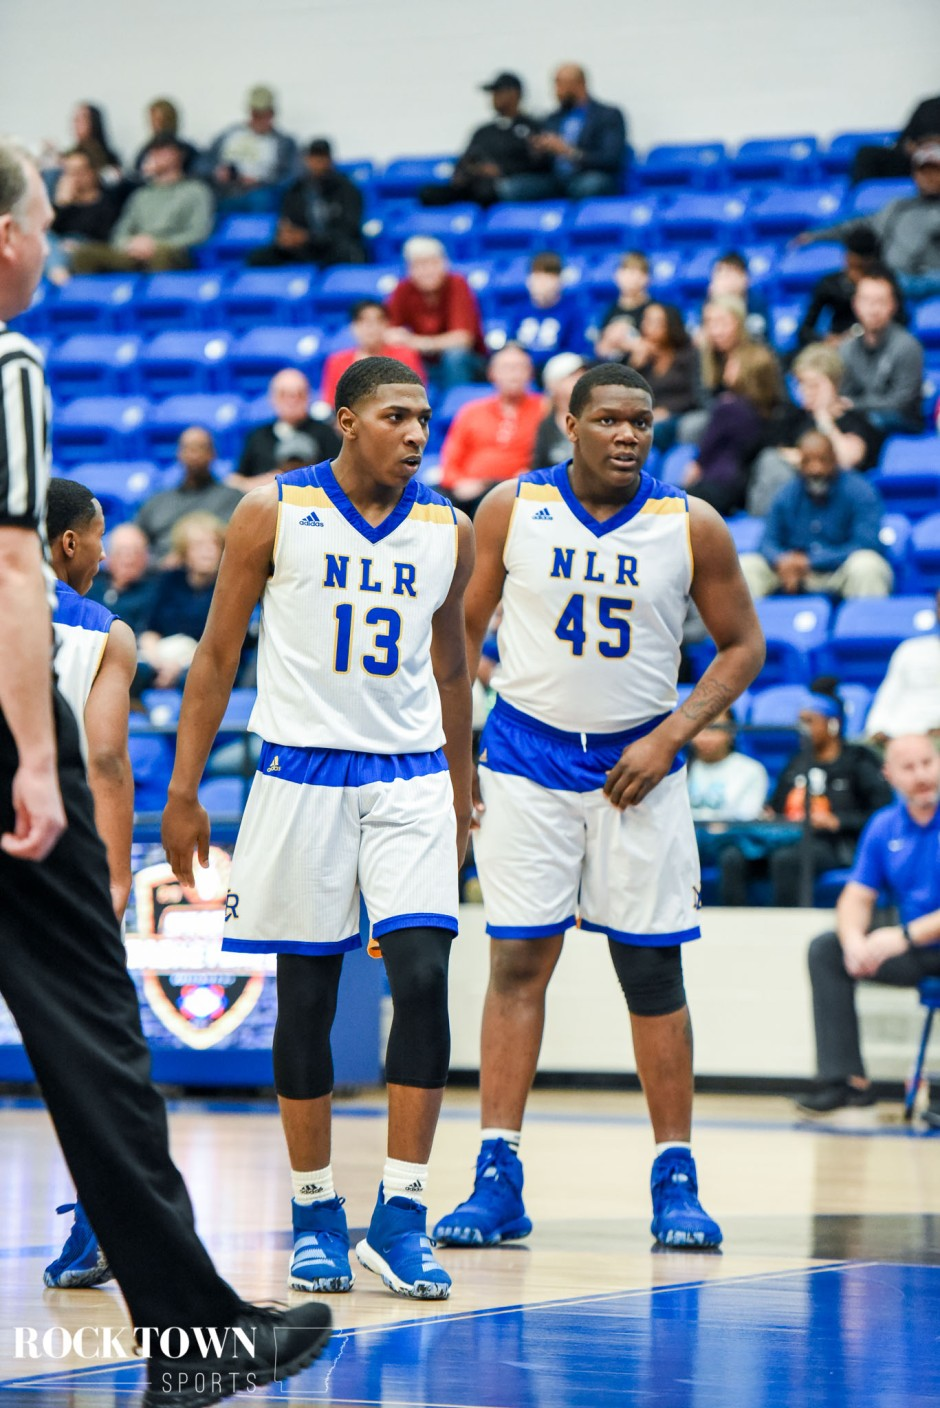 NLR_conway_bball_2020(i)-52